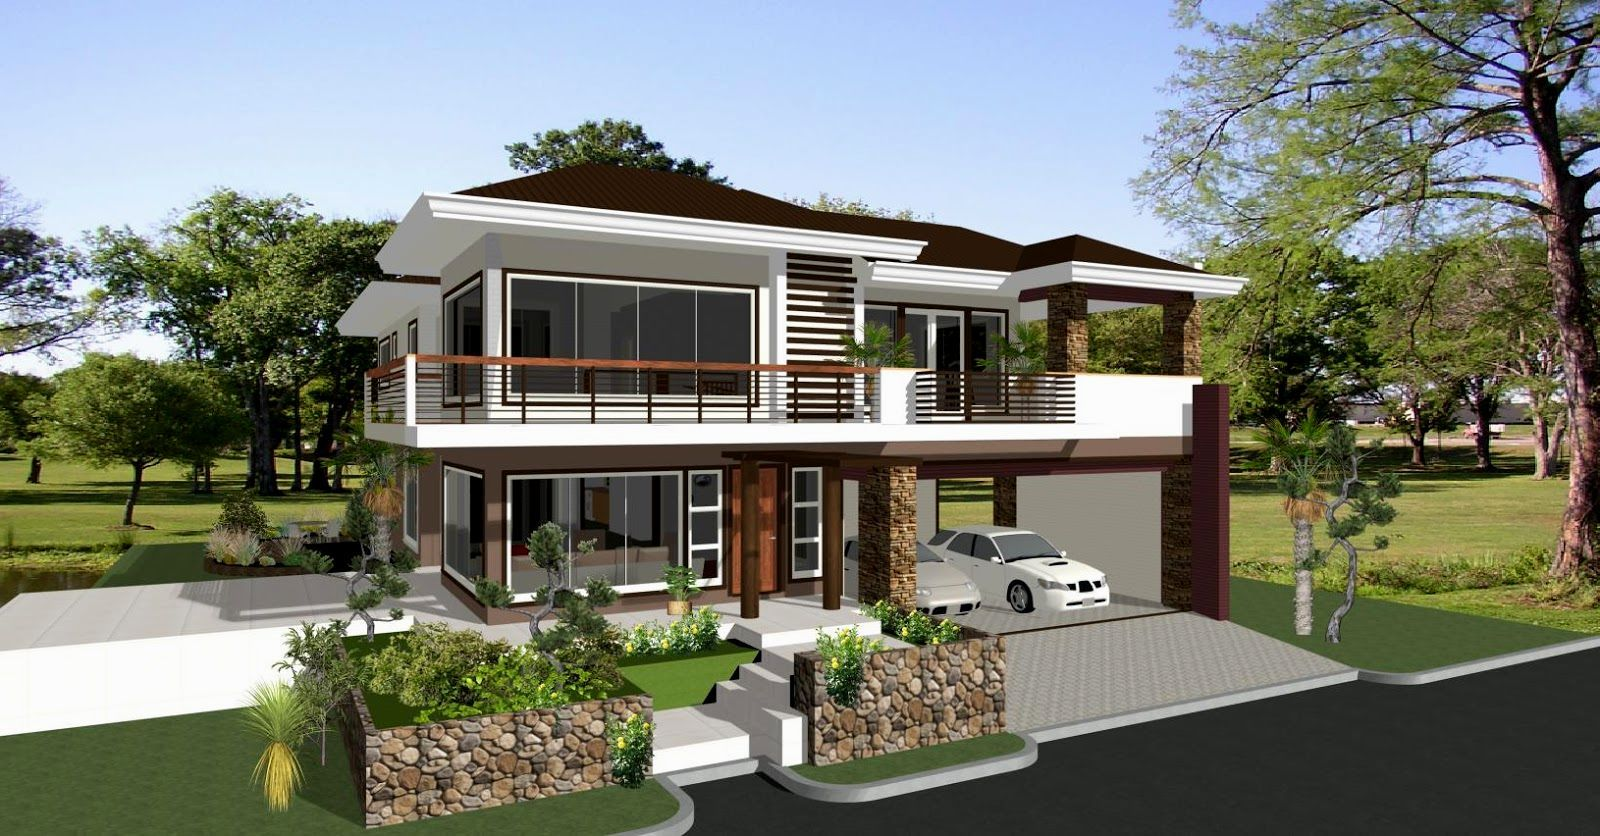 House Plans In Asia 3 Storey Apartment Design Philippines Modern House 2 Storey House Design Luxury House Designs Philippines House Design